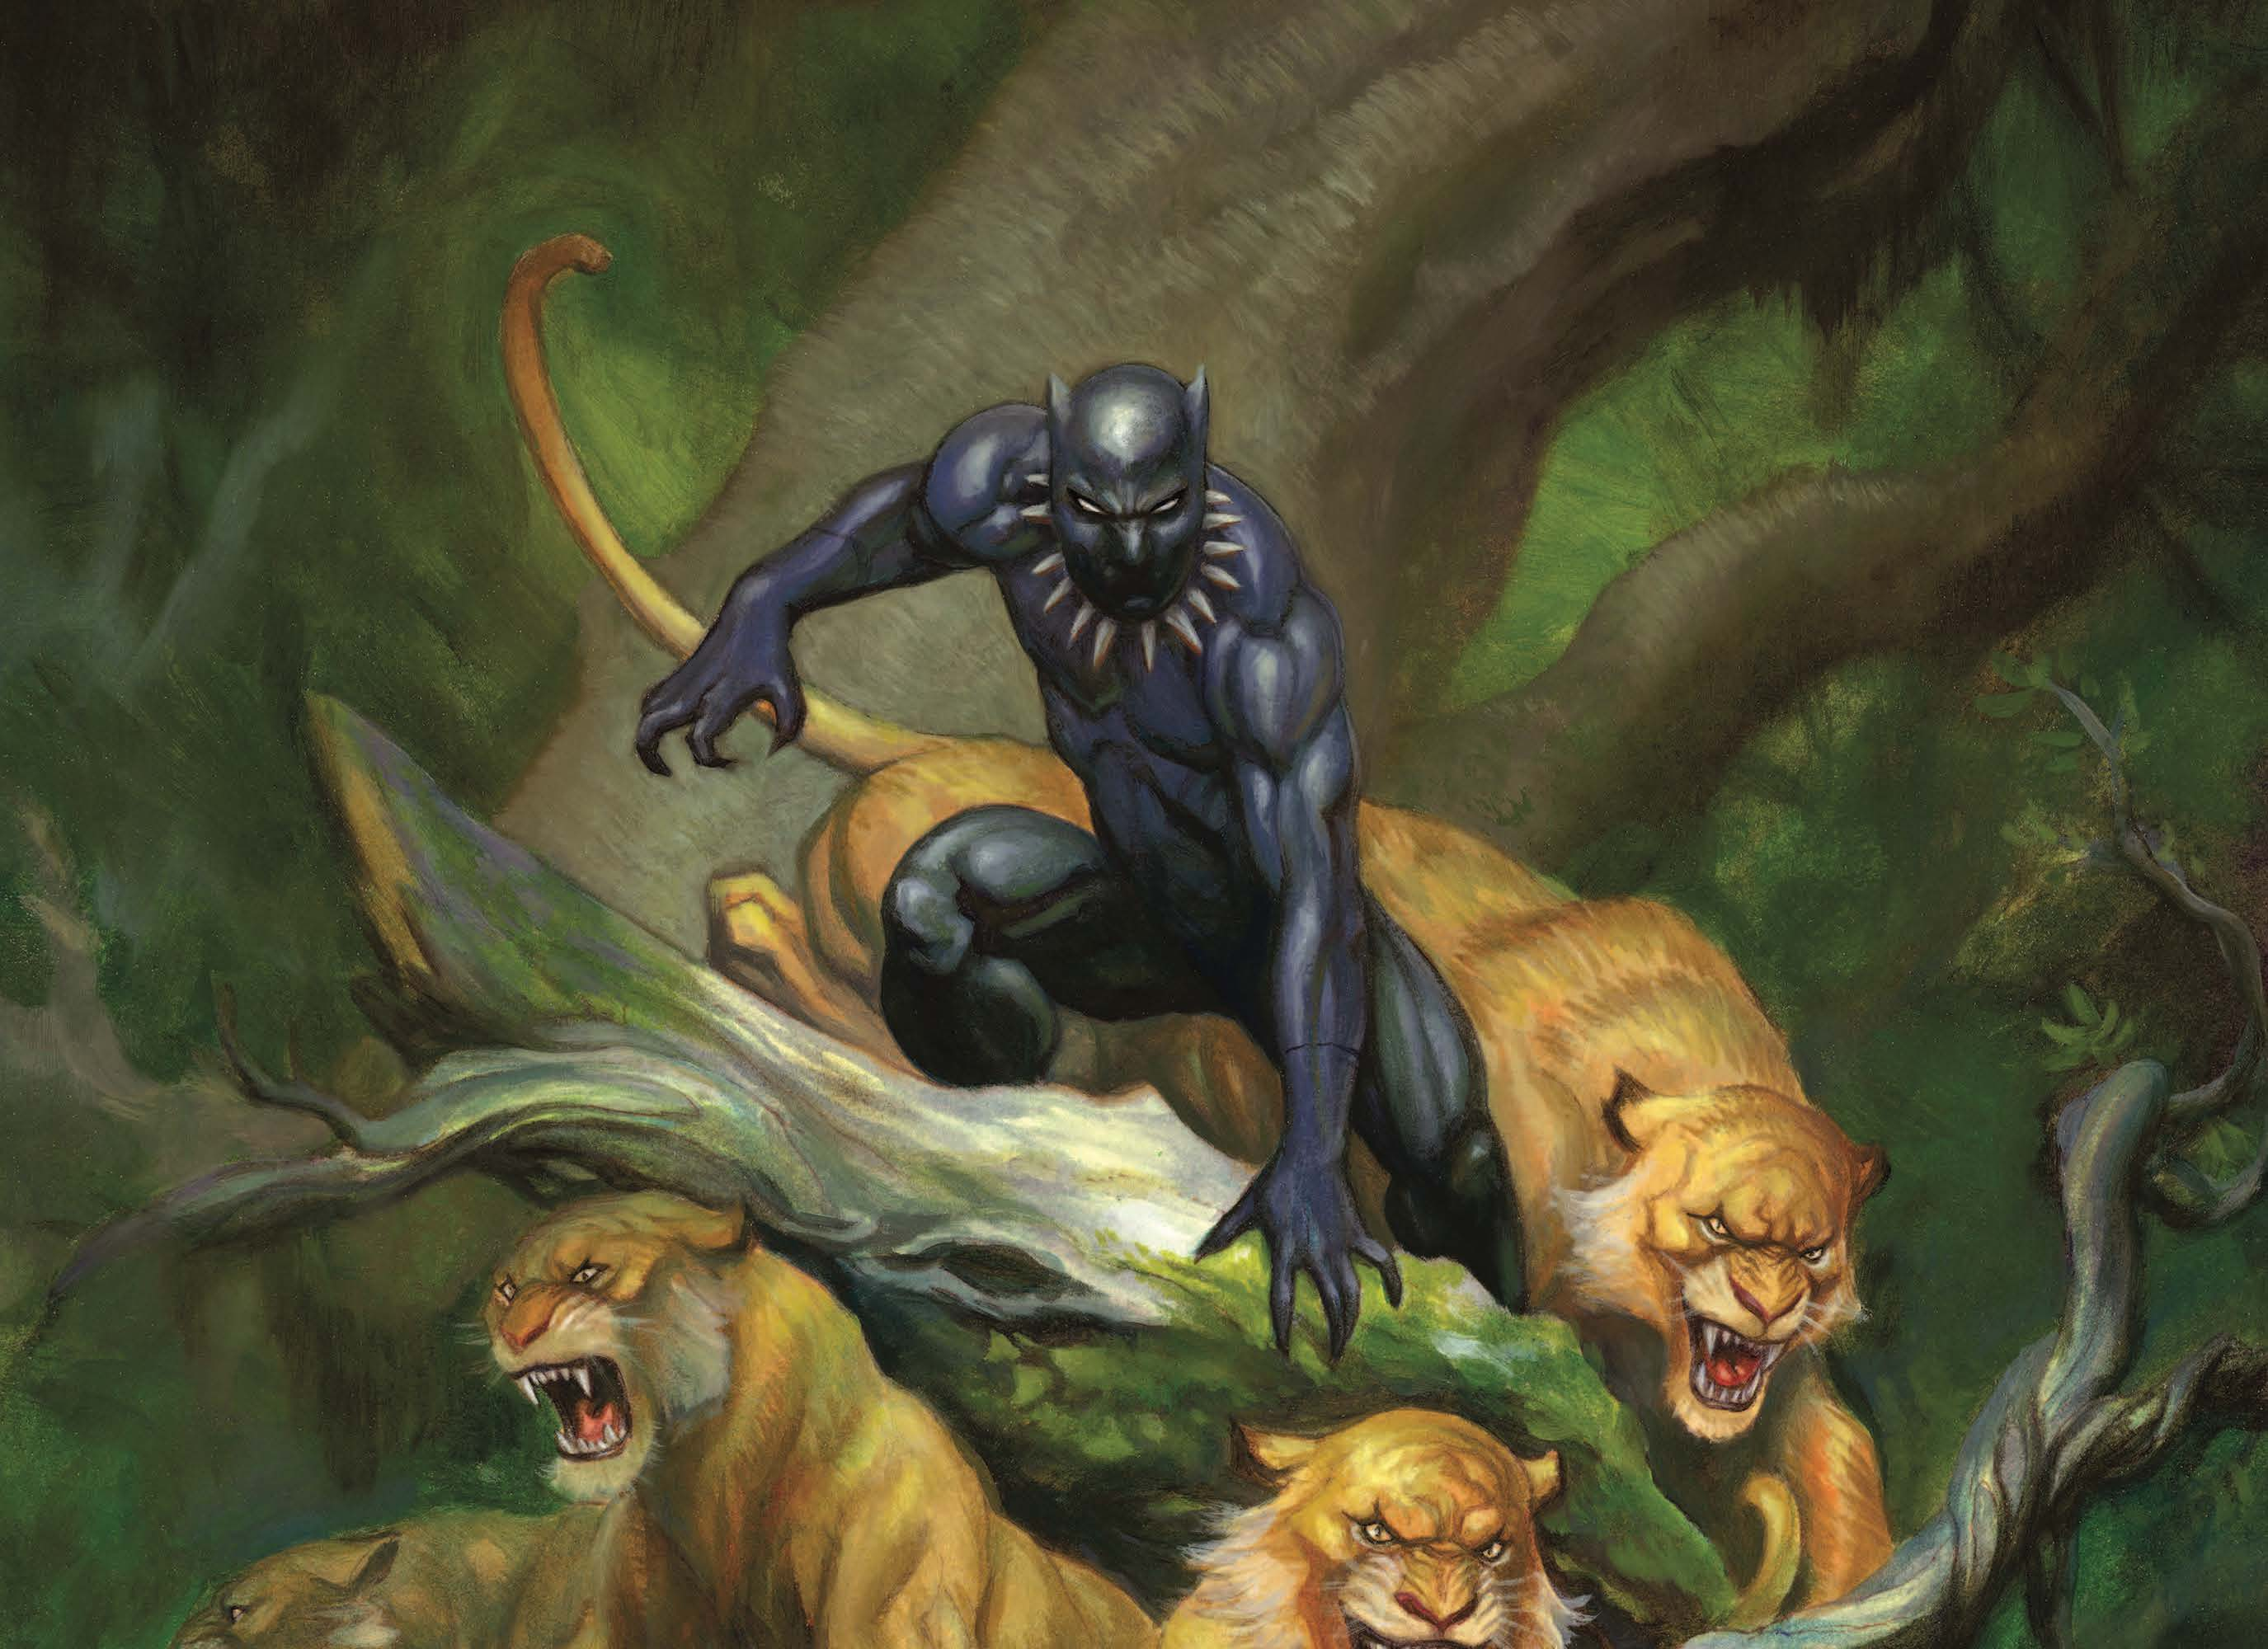 The darkest chapter of the Black Panther mythos continues as Wakanda crumbles from within. Enter: The Midnight Angels! Two mysterious women leading the citizen revolt against the current regime of Wakanda, challenging not only T'Challa's politics but also his resolve. But will their rage provide more for the people than the royal family has thus far? Written by MacArthur Genius and National Book Award winner TA-NEHISI COATES (Between the World and Me) and illustrated by living legend BRIAN STELFREEZE! Rated T